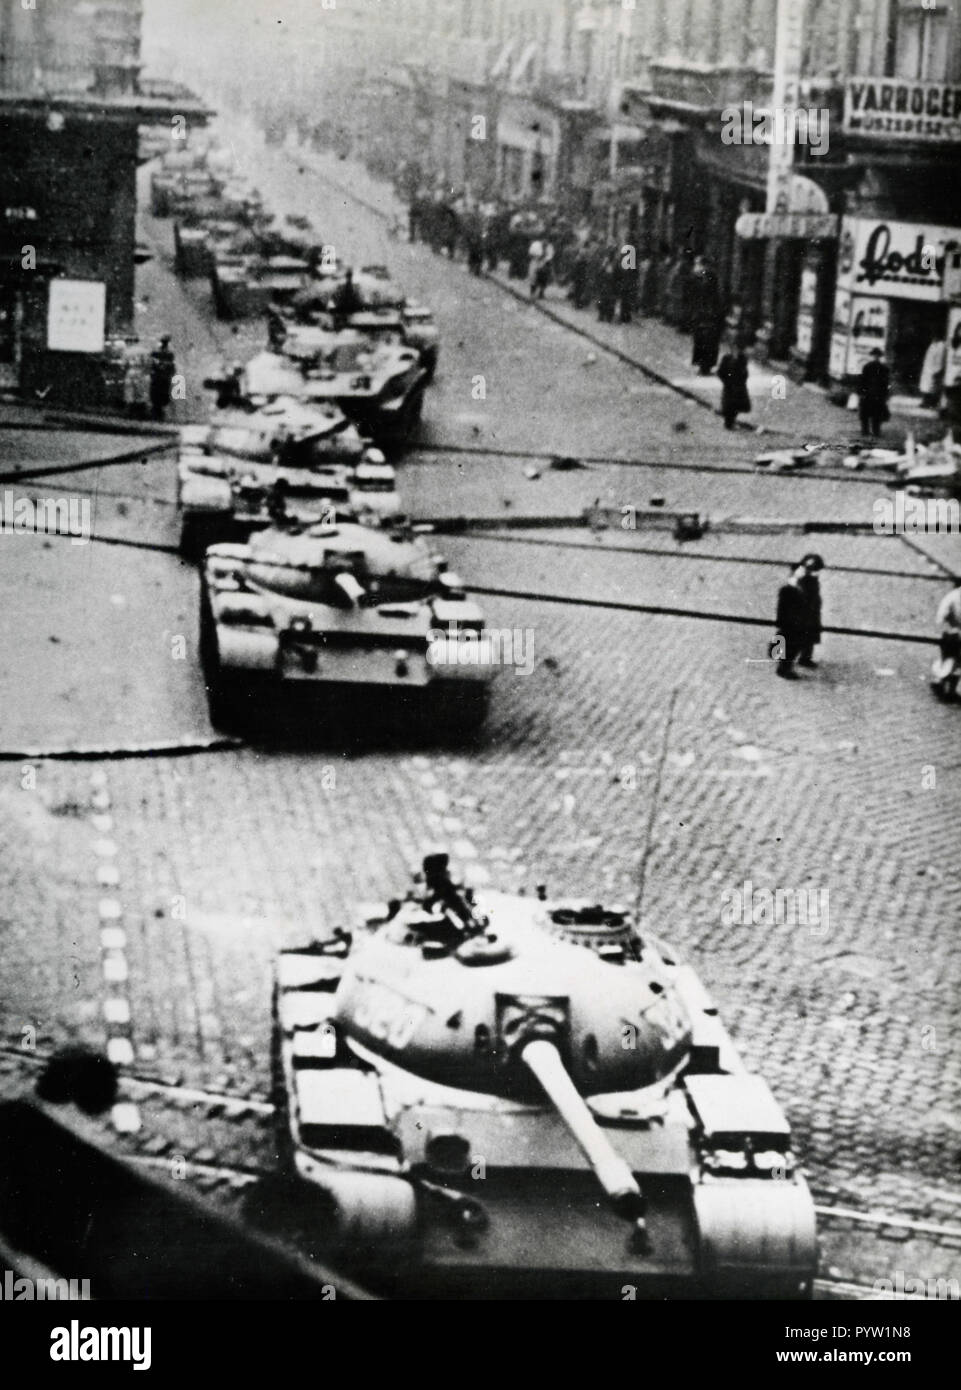 Soviet Union tanks in the streets, Budapest, Hungary 1956 - Stock Image